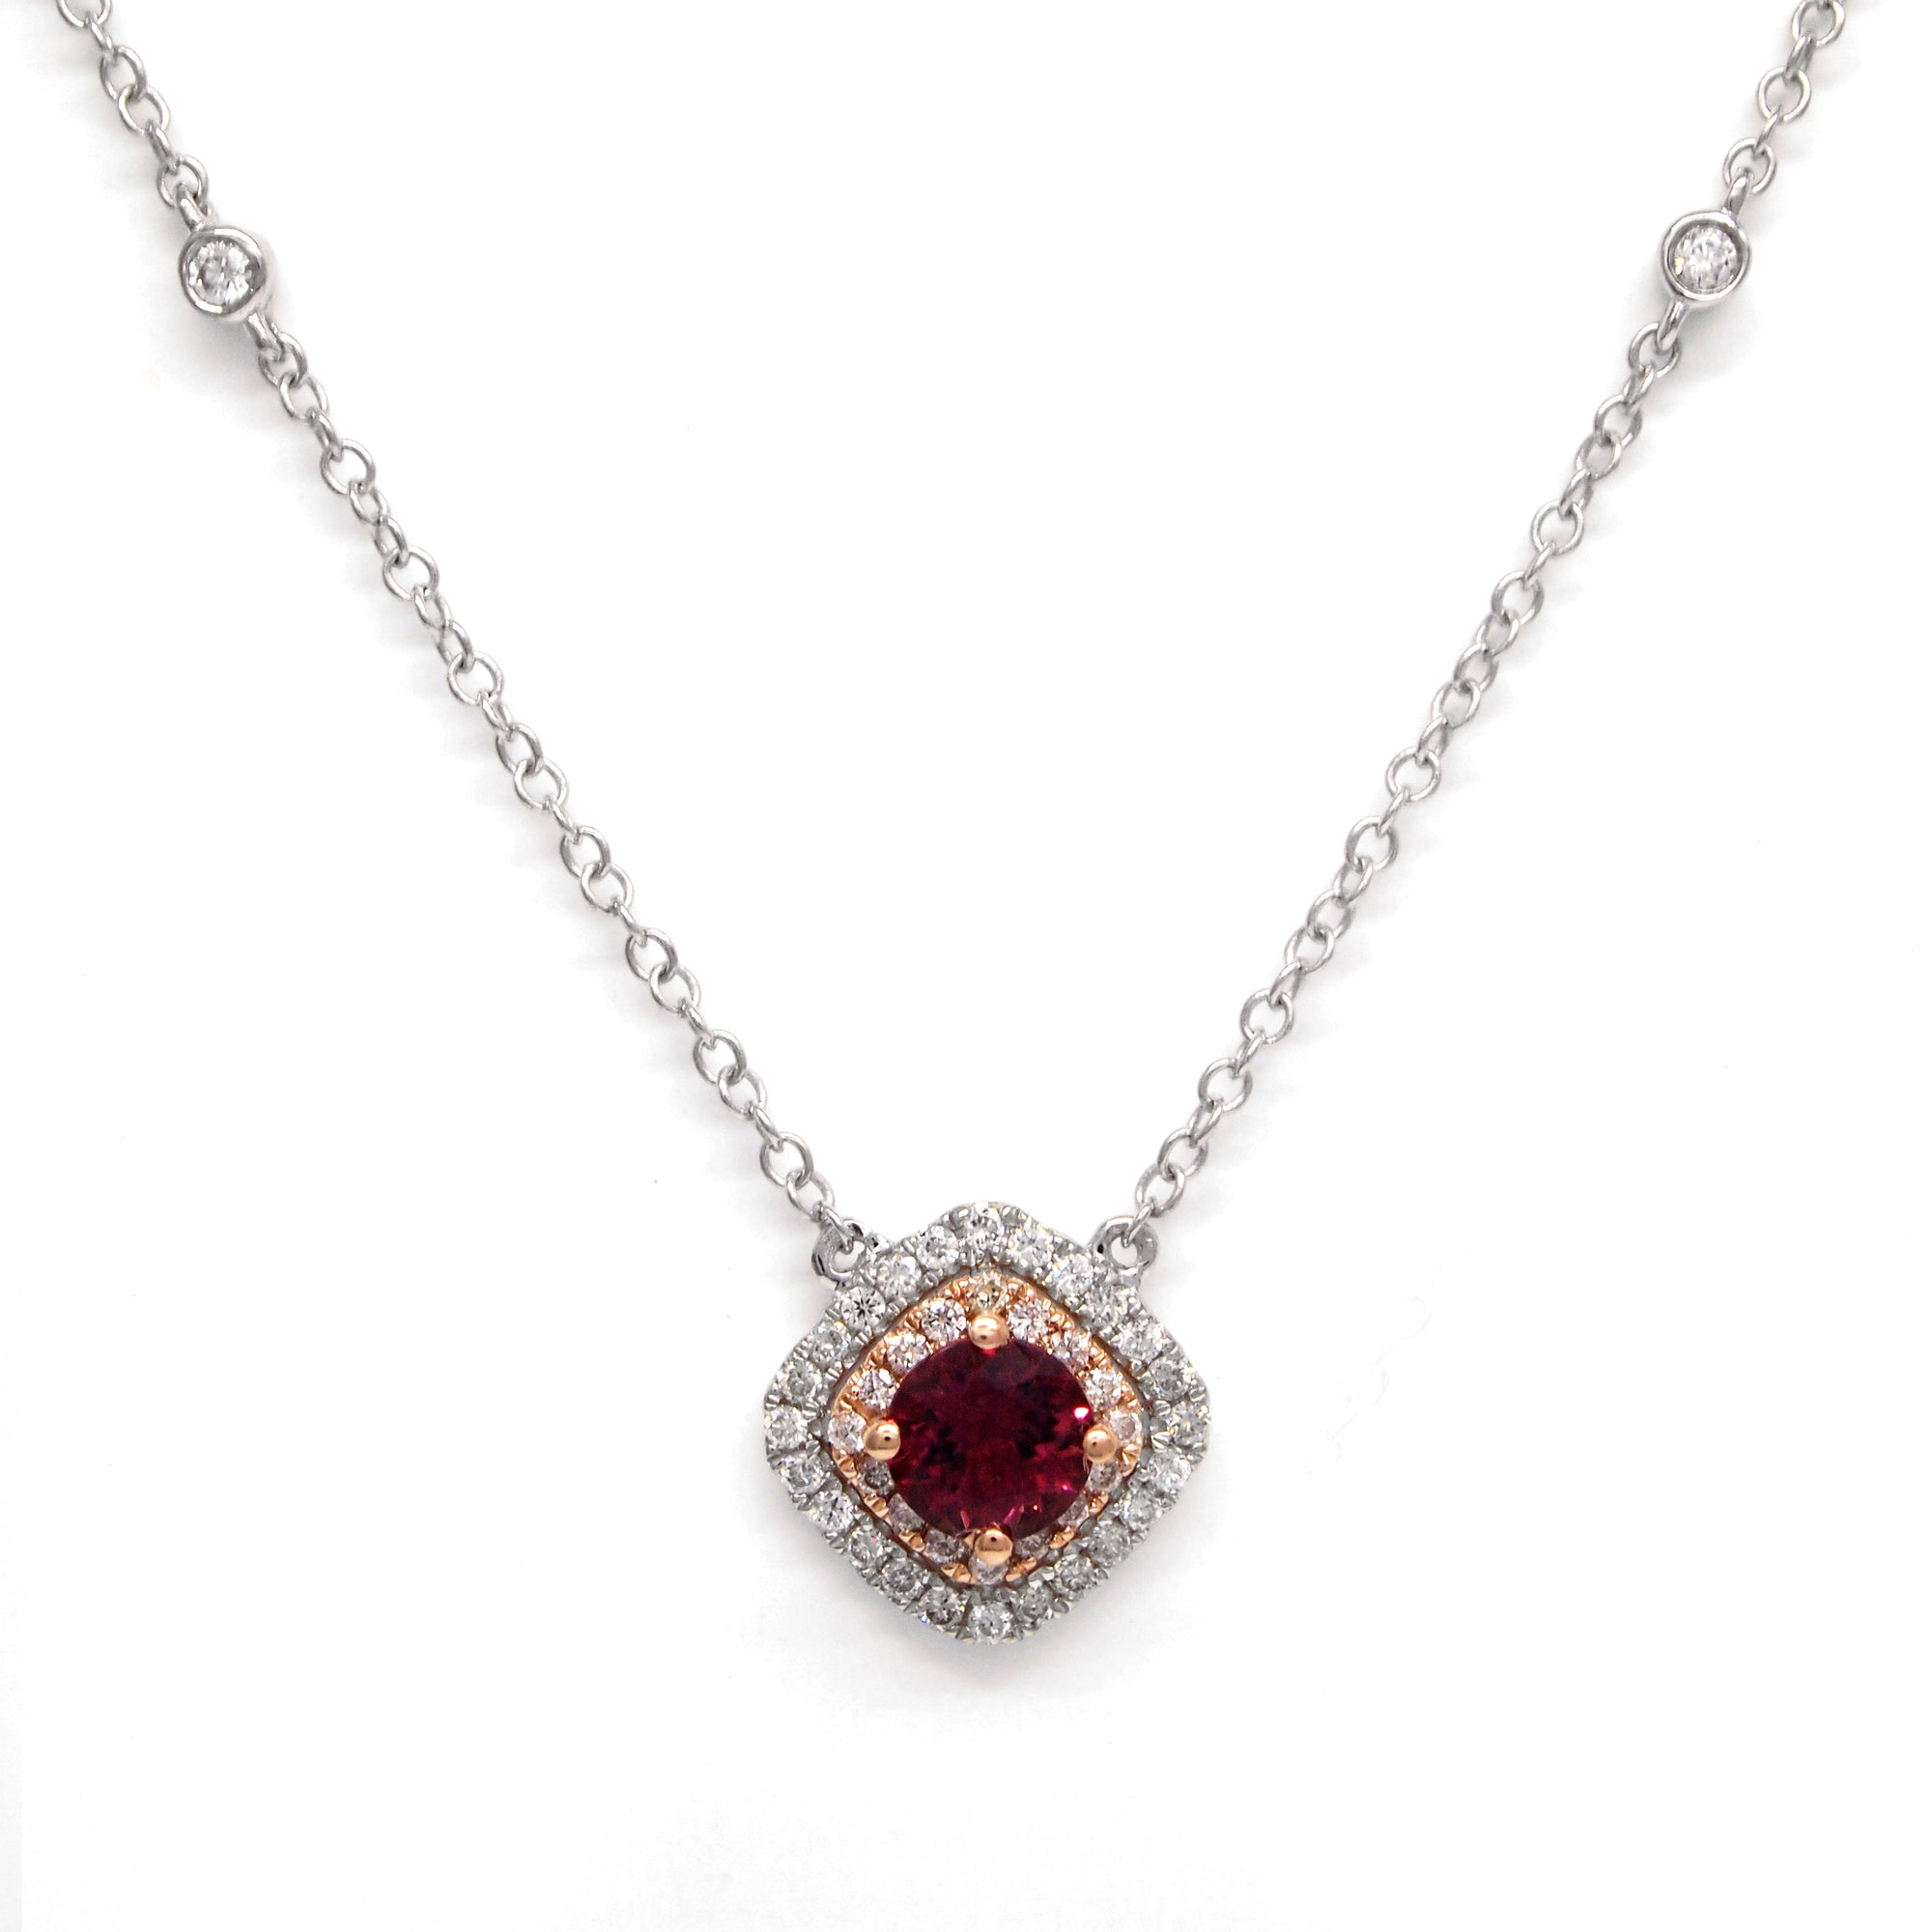 14K two-tone white and rose gold necklace featuring one 0.47 carat round pink tourmaline, and double halo with round brilliant diamonds weighing a total of 0.23 carats.